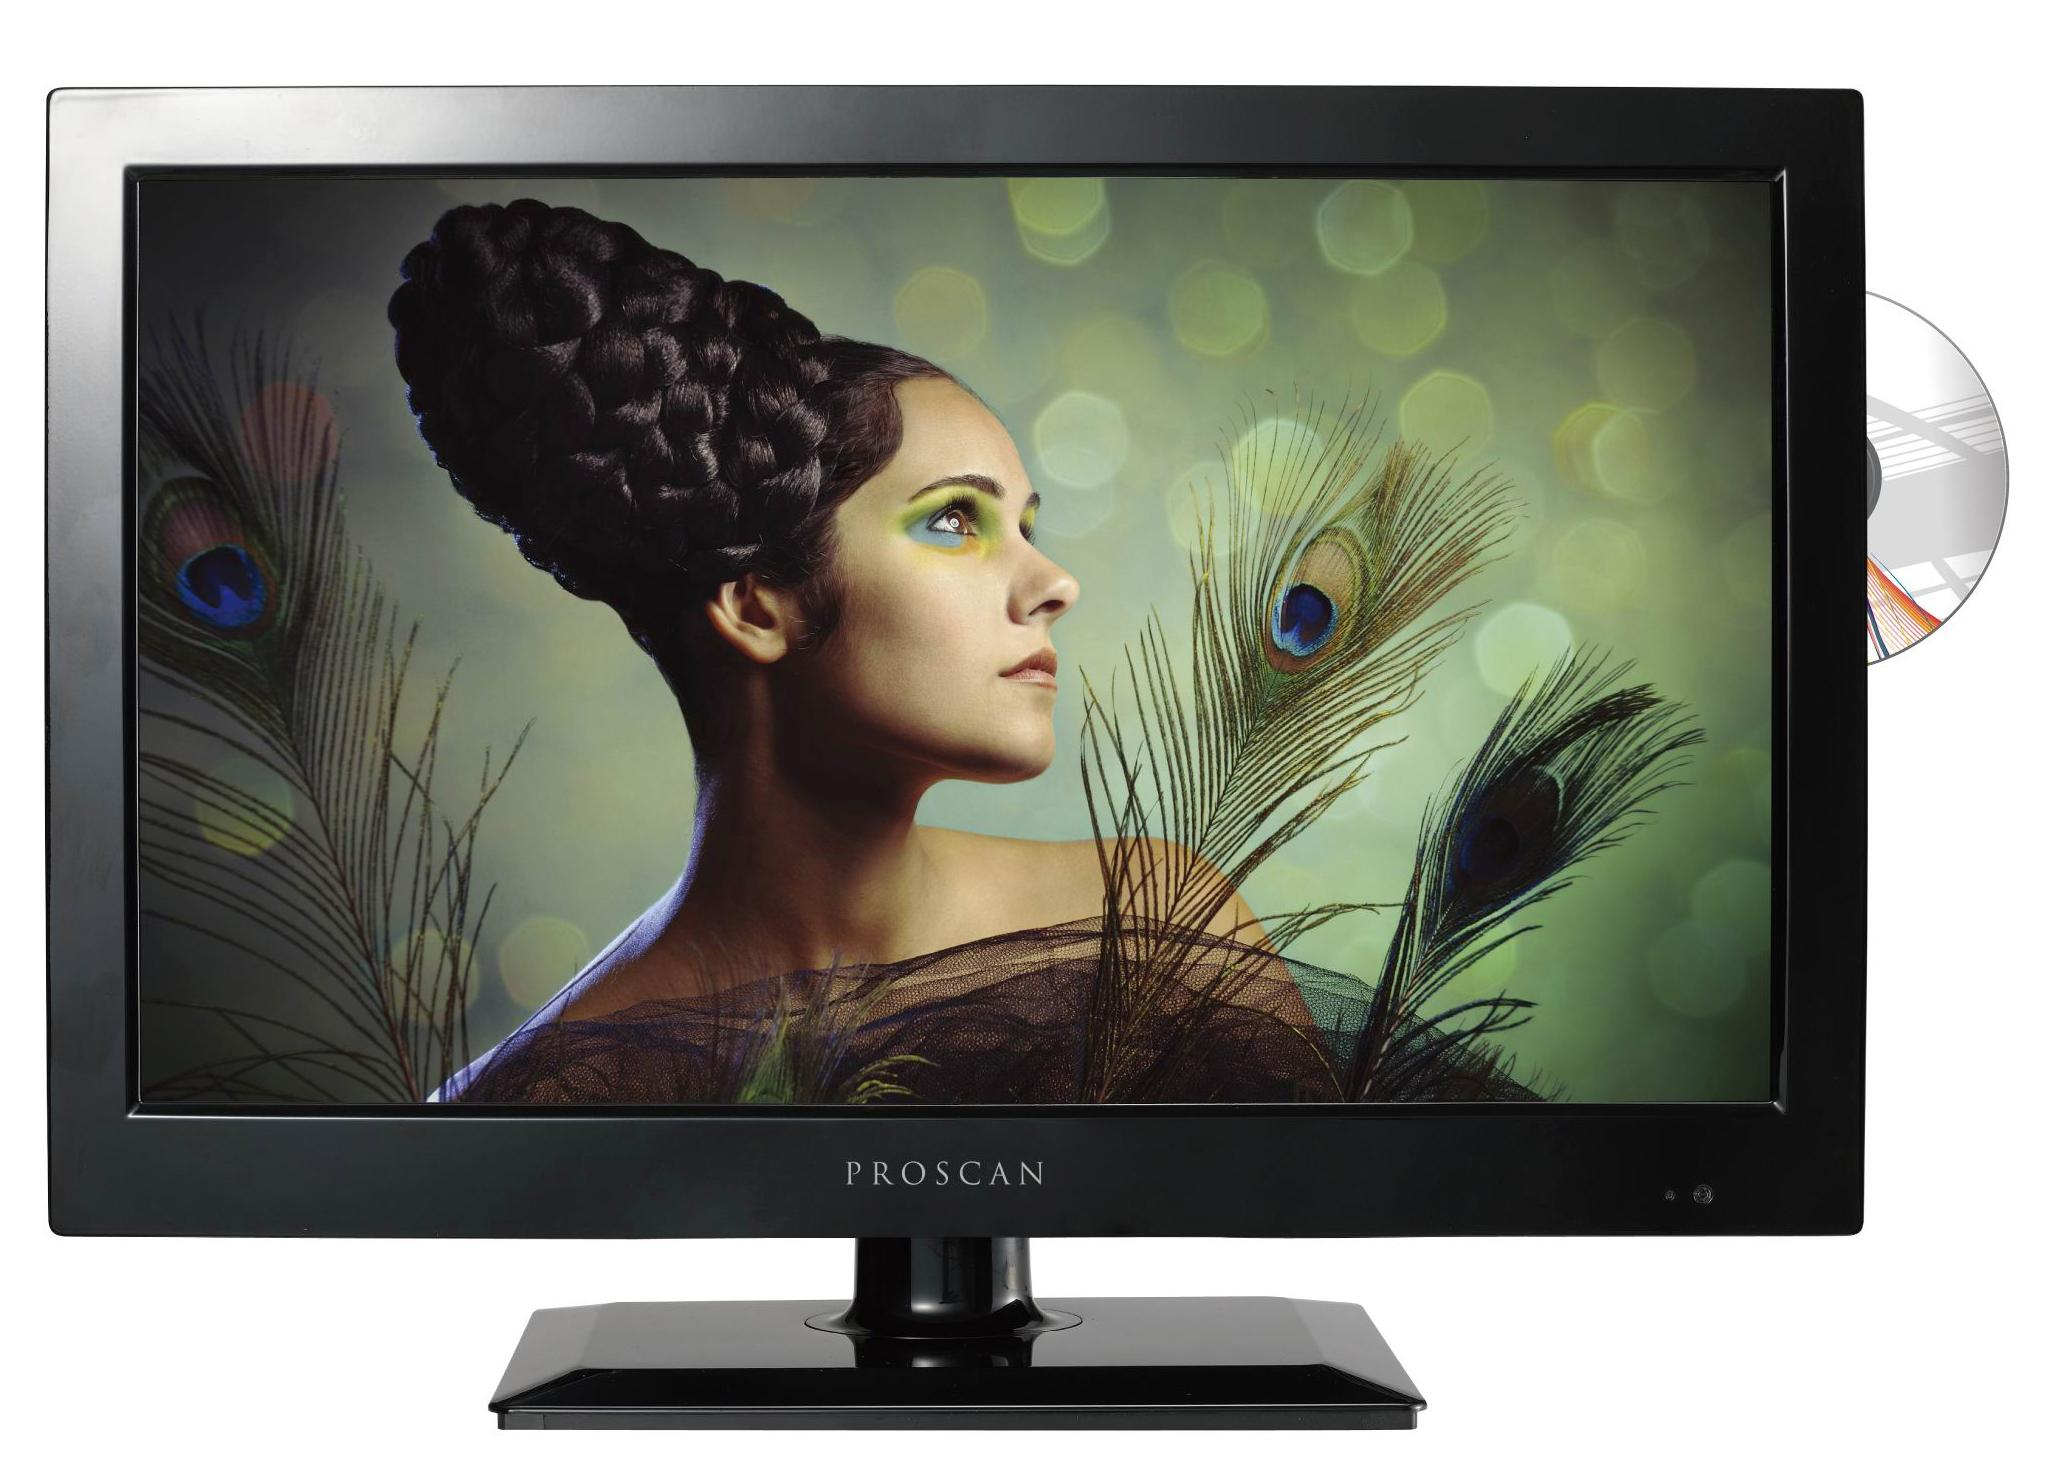 proscan pledv1945a b 19 inch 720p 60hz led tv dvd combo proscan electronics. Black Bedroom Furniture Sets. Home Design Ideas